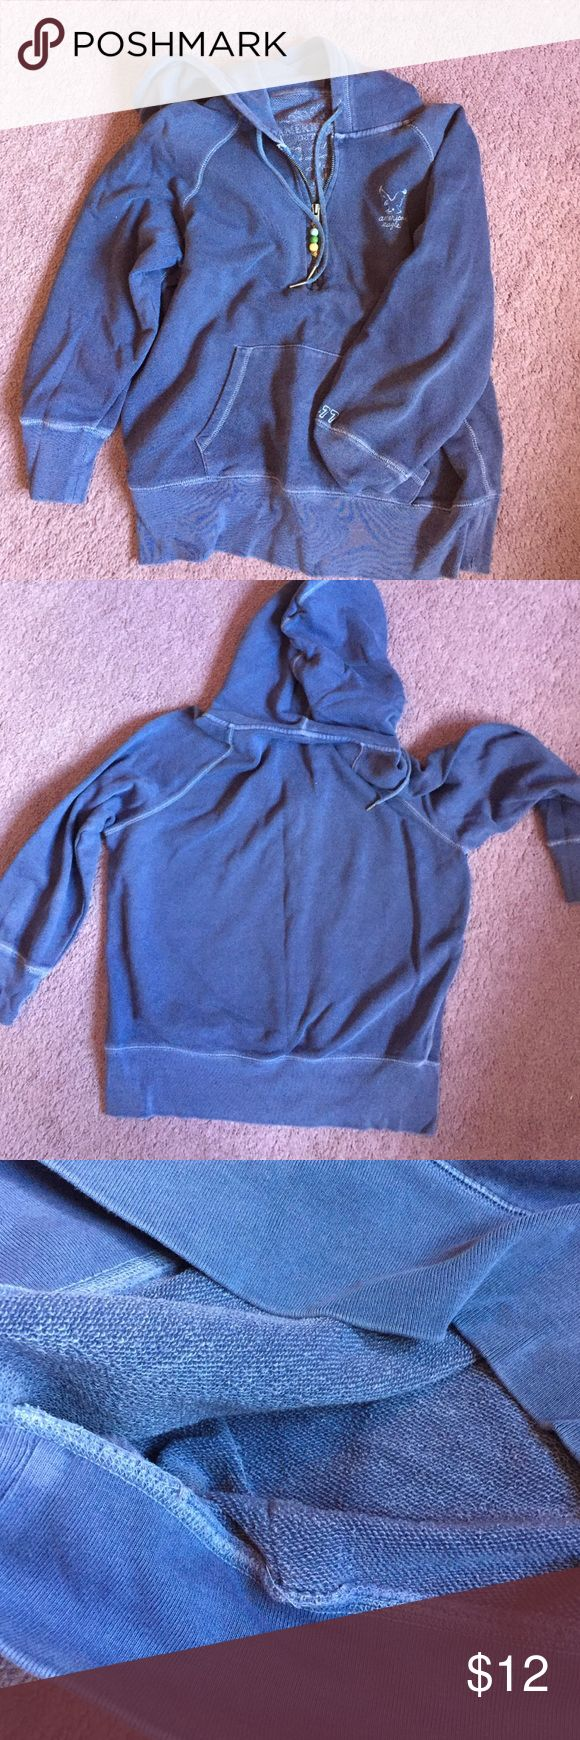 American eagle sweatshirt Bluish purple color (mostly blue) sweatshirt from American eagle outfitters. The inside is perfect for a cool summer night or warm fall. Zipper works perfectly. Small stain on the right cuff towards the hand as seen in the last picture. Other than gat it is in great condition! American Eagle Outfitters Tops